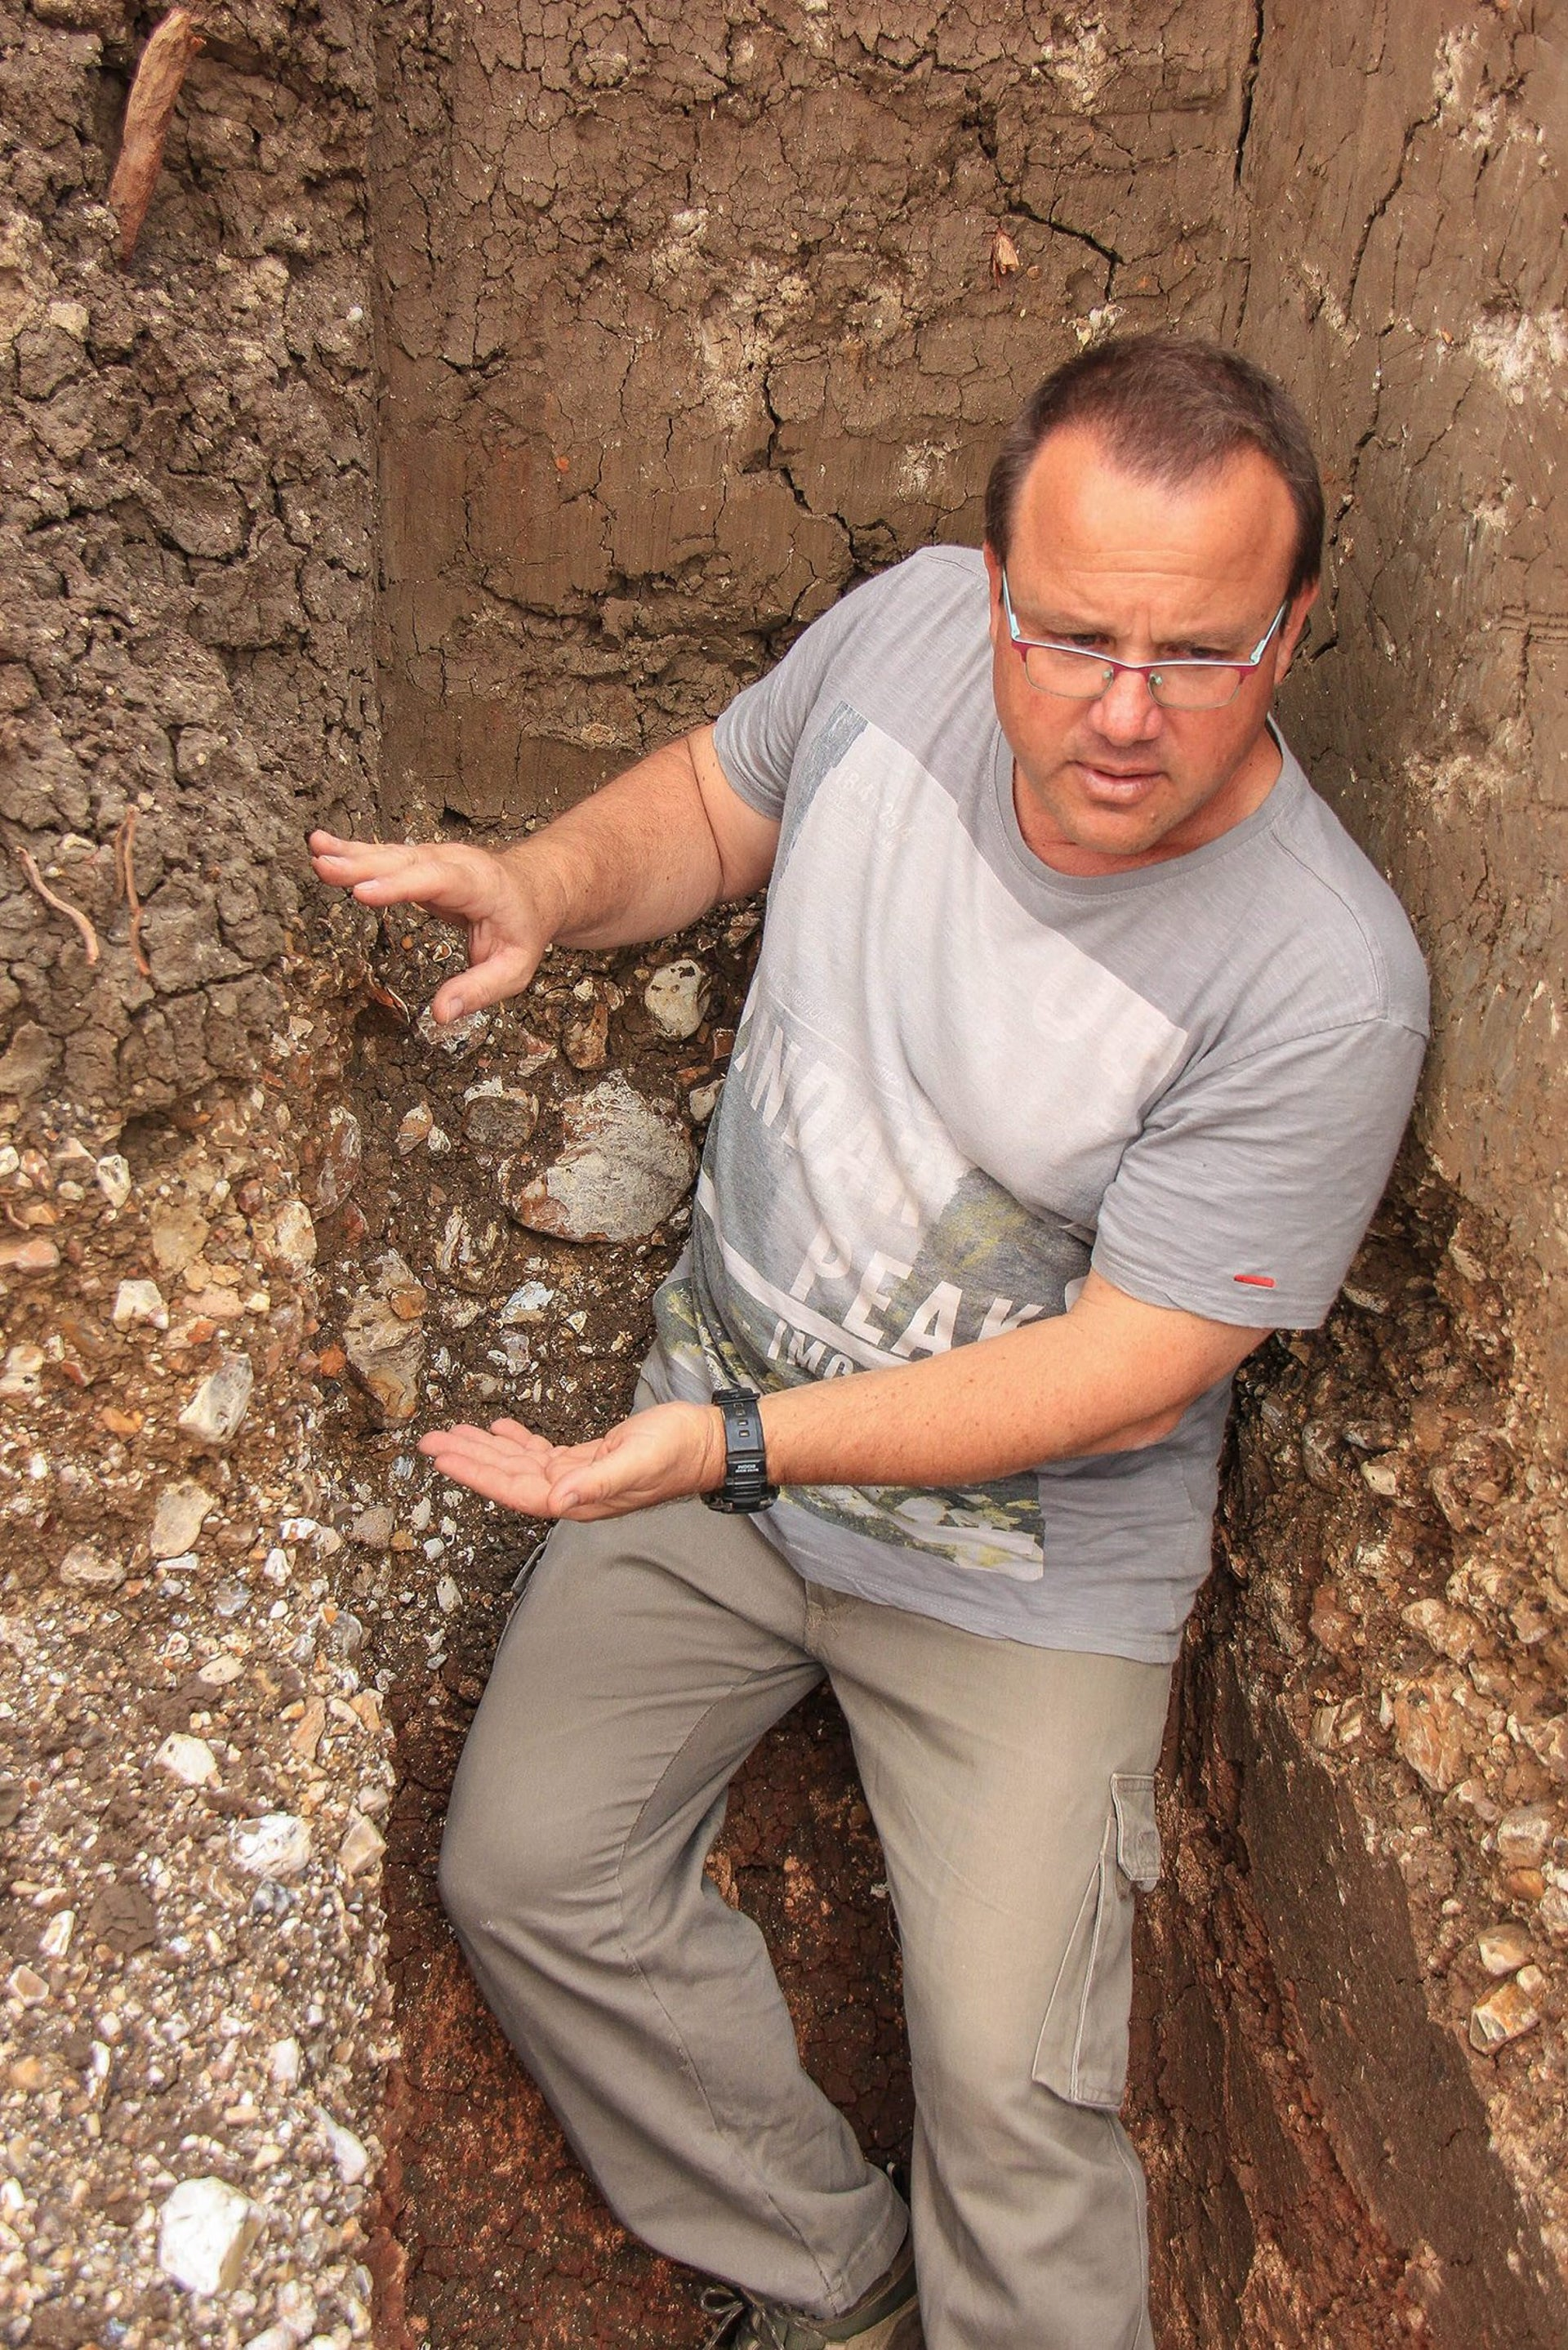 Tel Aviv University archaeologist Ran Barkai shows a sections of sediments filled with pieces of flint and tools at a prehistoric site in Jaljulia.